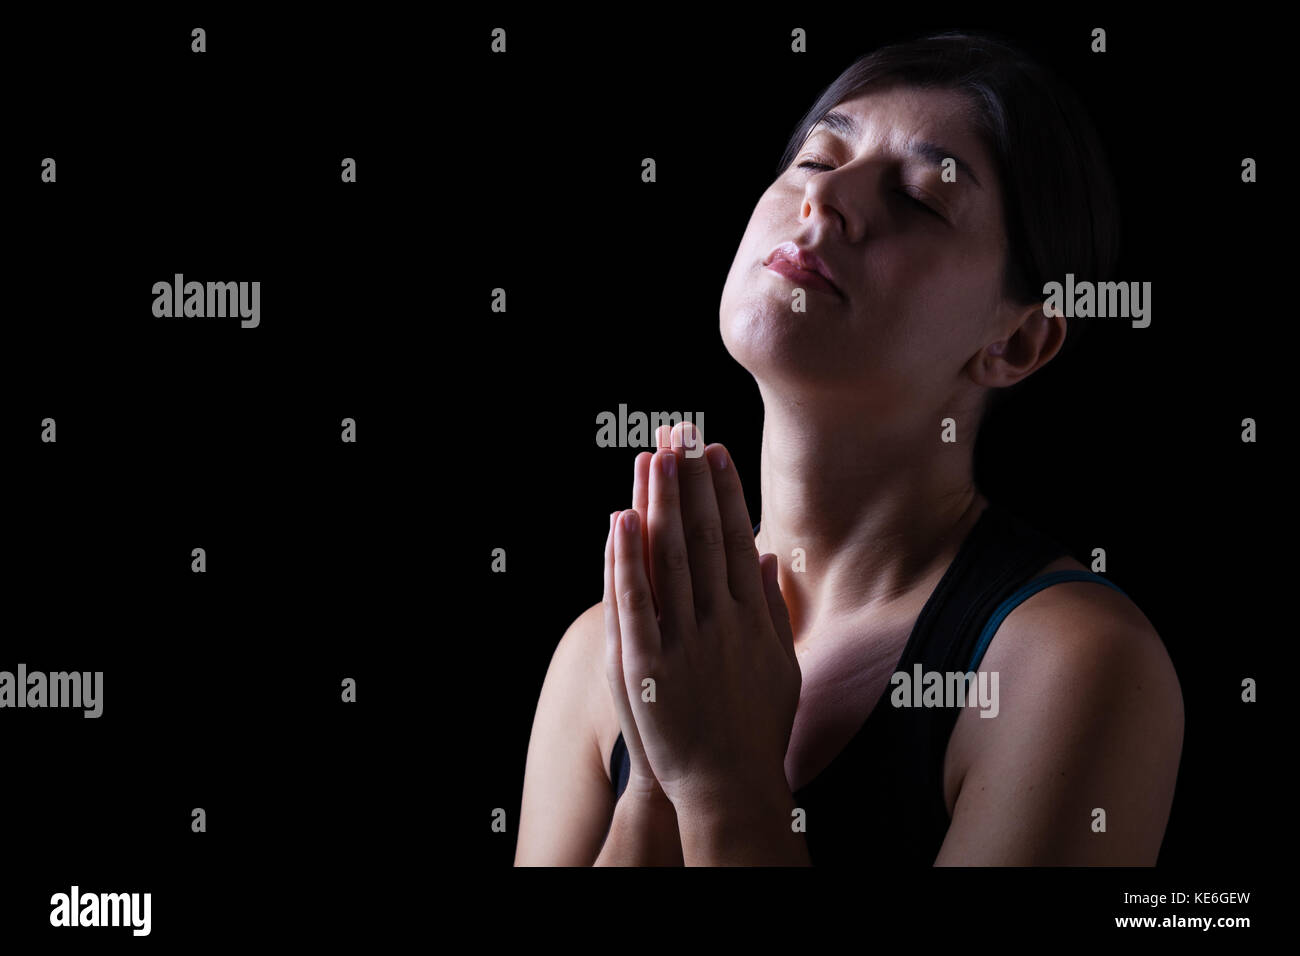 Faithful woman praying and feeling the presence or being touched by god. Hands folded in worship, head up and eyes Stock Photo